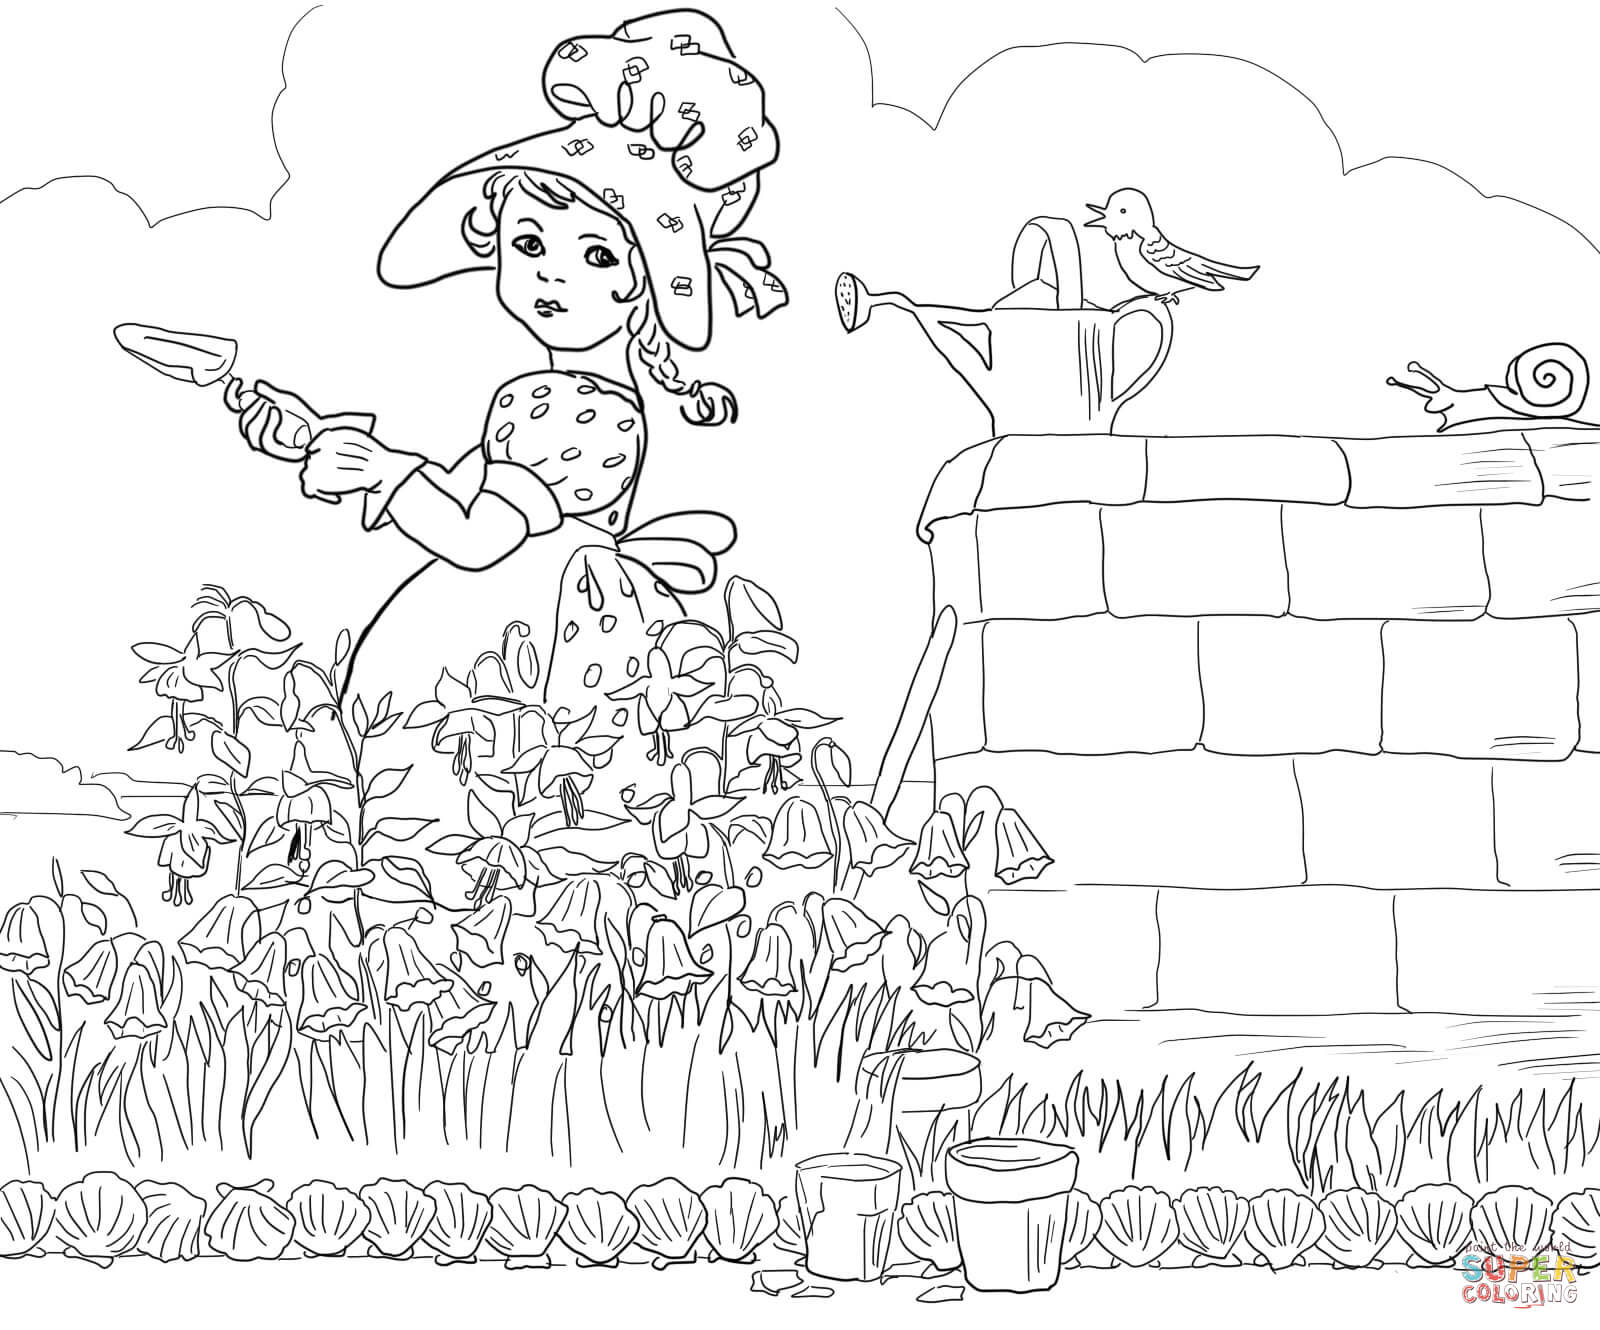 Rain Rain Go Away Coloring Page: Mary Mary Quite Contrary Coloring Page